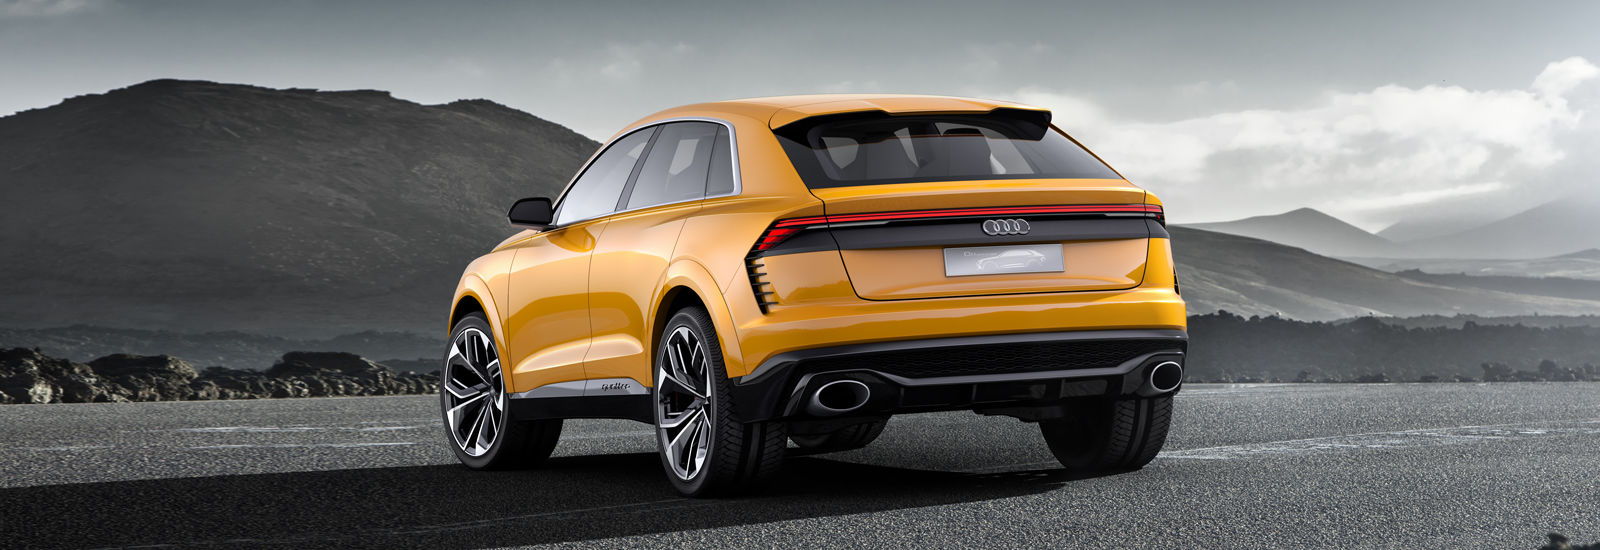 Audi Q Sport Concept Price And Release Date Carwow - Audi cars q8 price list